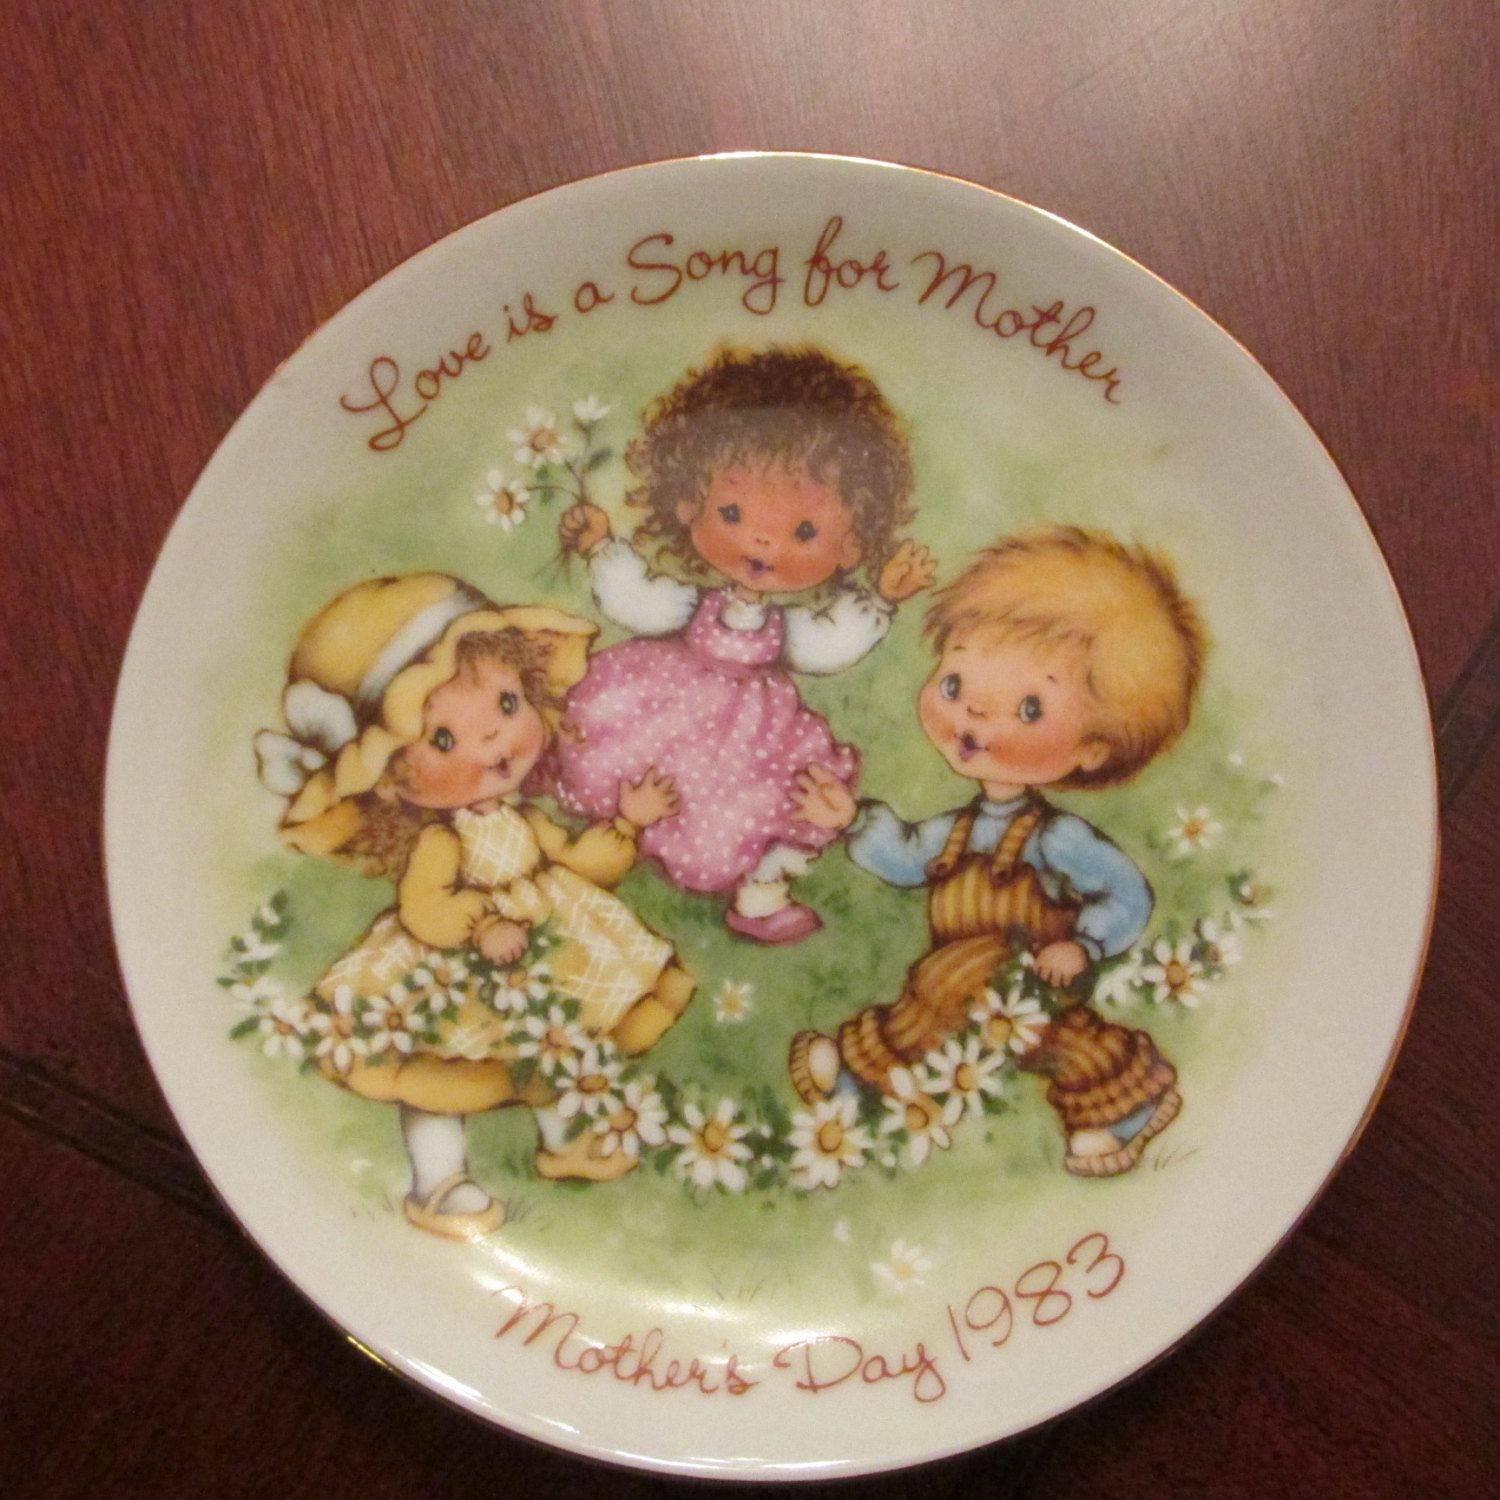 "Vintage Avon Mother's Day Small Collectors Plate ""Love is a Song for Mother"" 1983 by AvonKatVintage on Etsy Use code OFF20 to get 20% OFF orders of $50 or more https://www.etsy.com/your/shops/AvonKatVintage #avon #plate #mothersday"